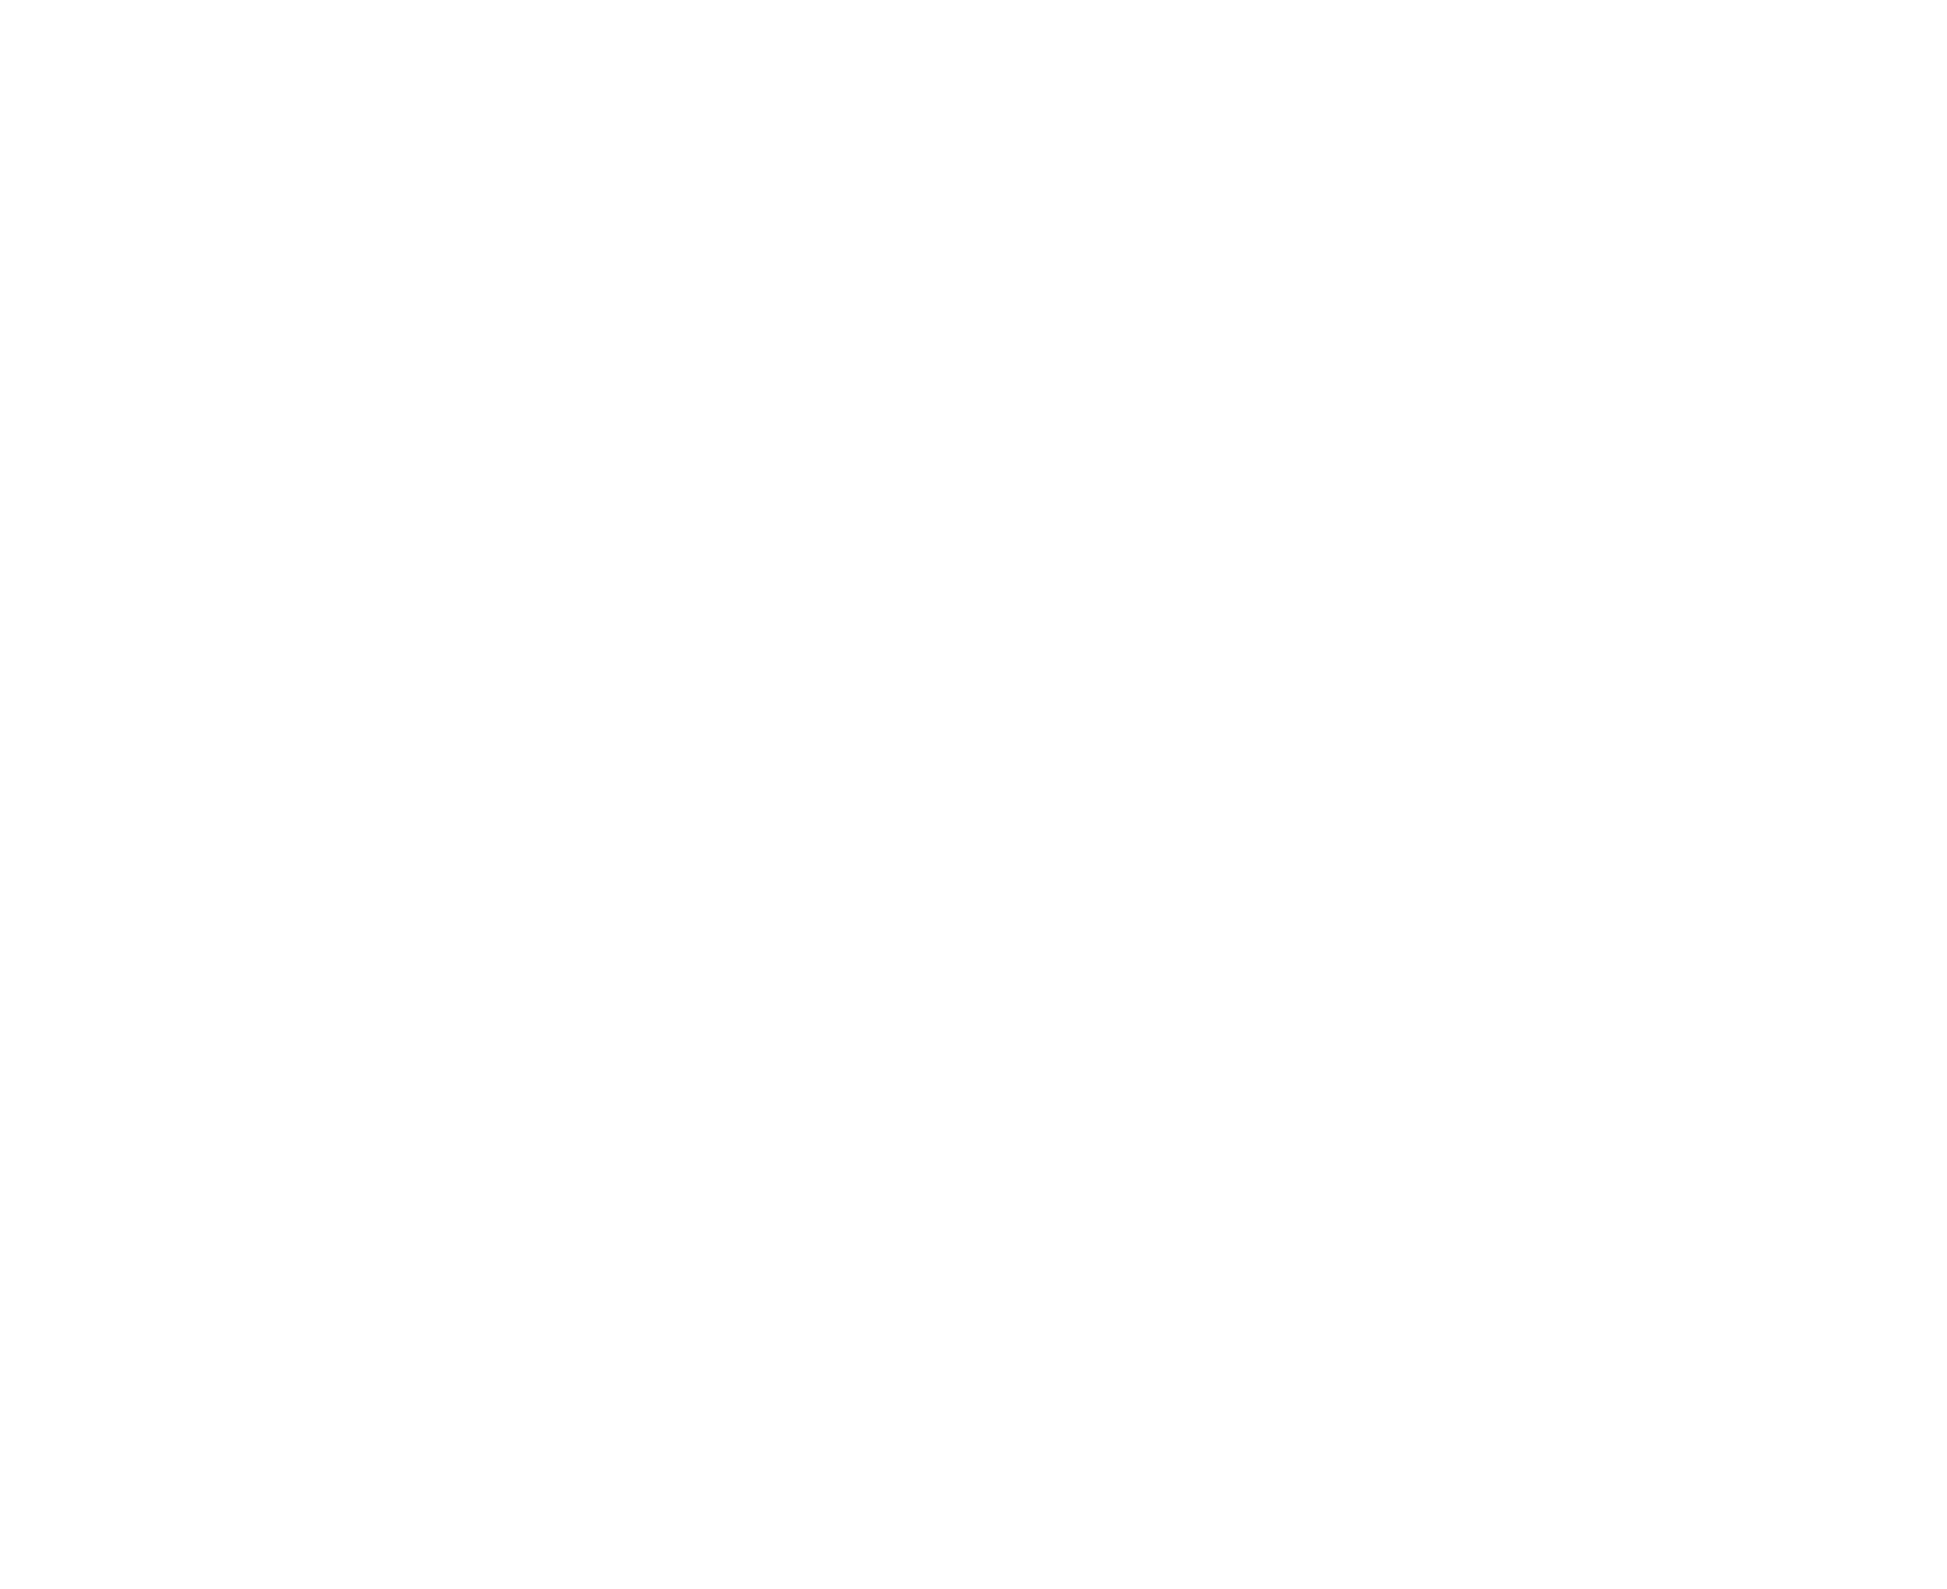 Provided over 9,400 affordable homes for families in need.